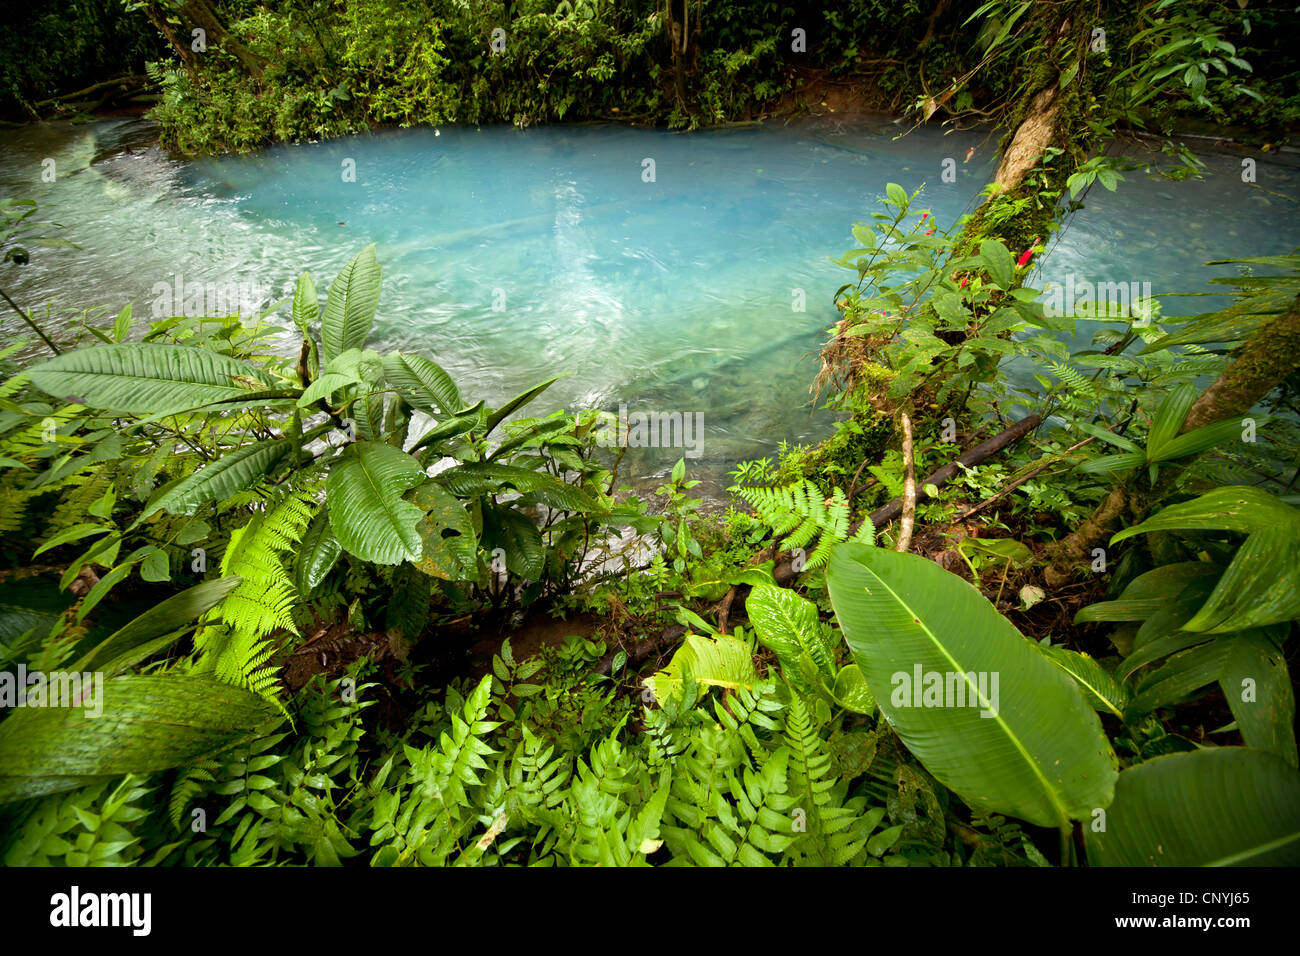 the blue waters of the Rio Celeste in VolcanTenorio National Park, Costa Rica, Central America - Stock Image